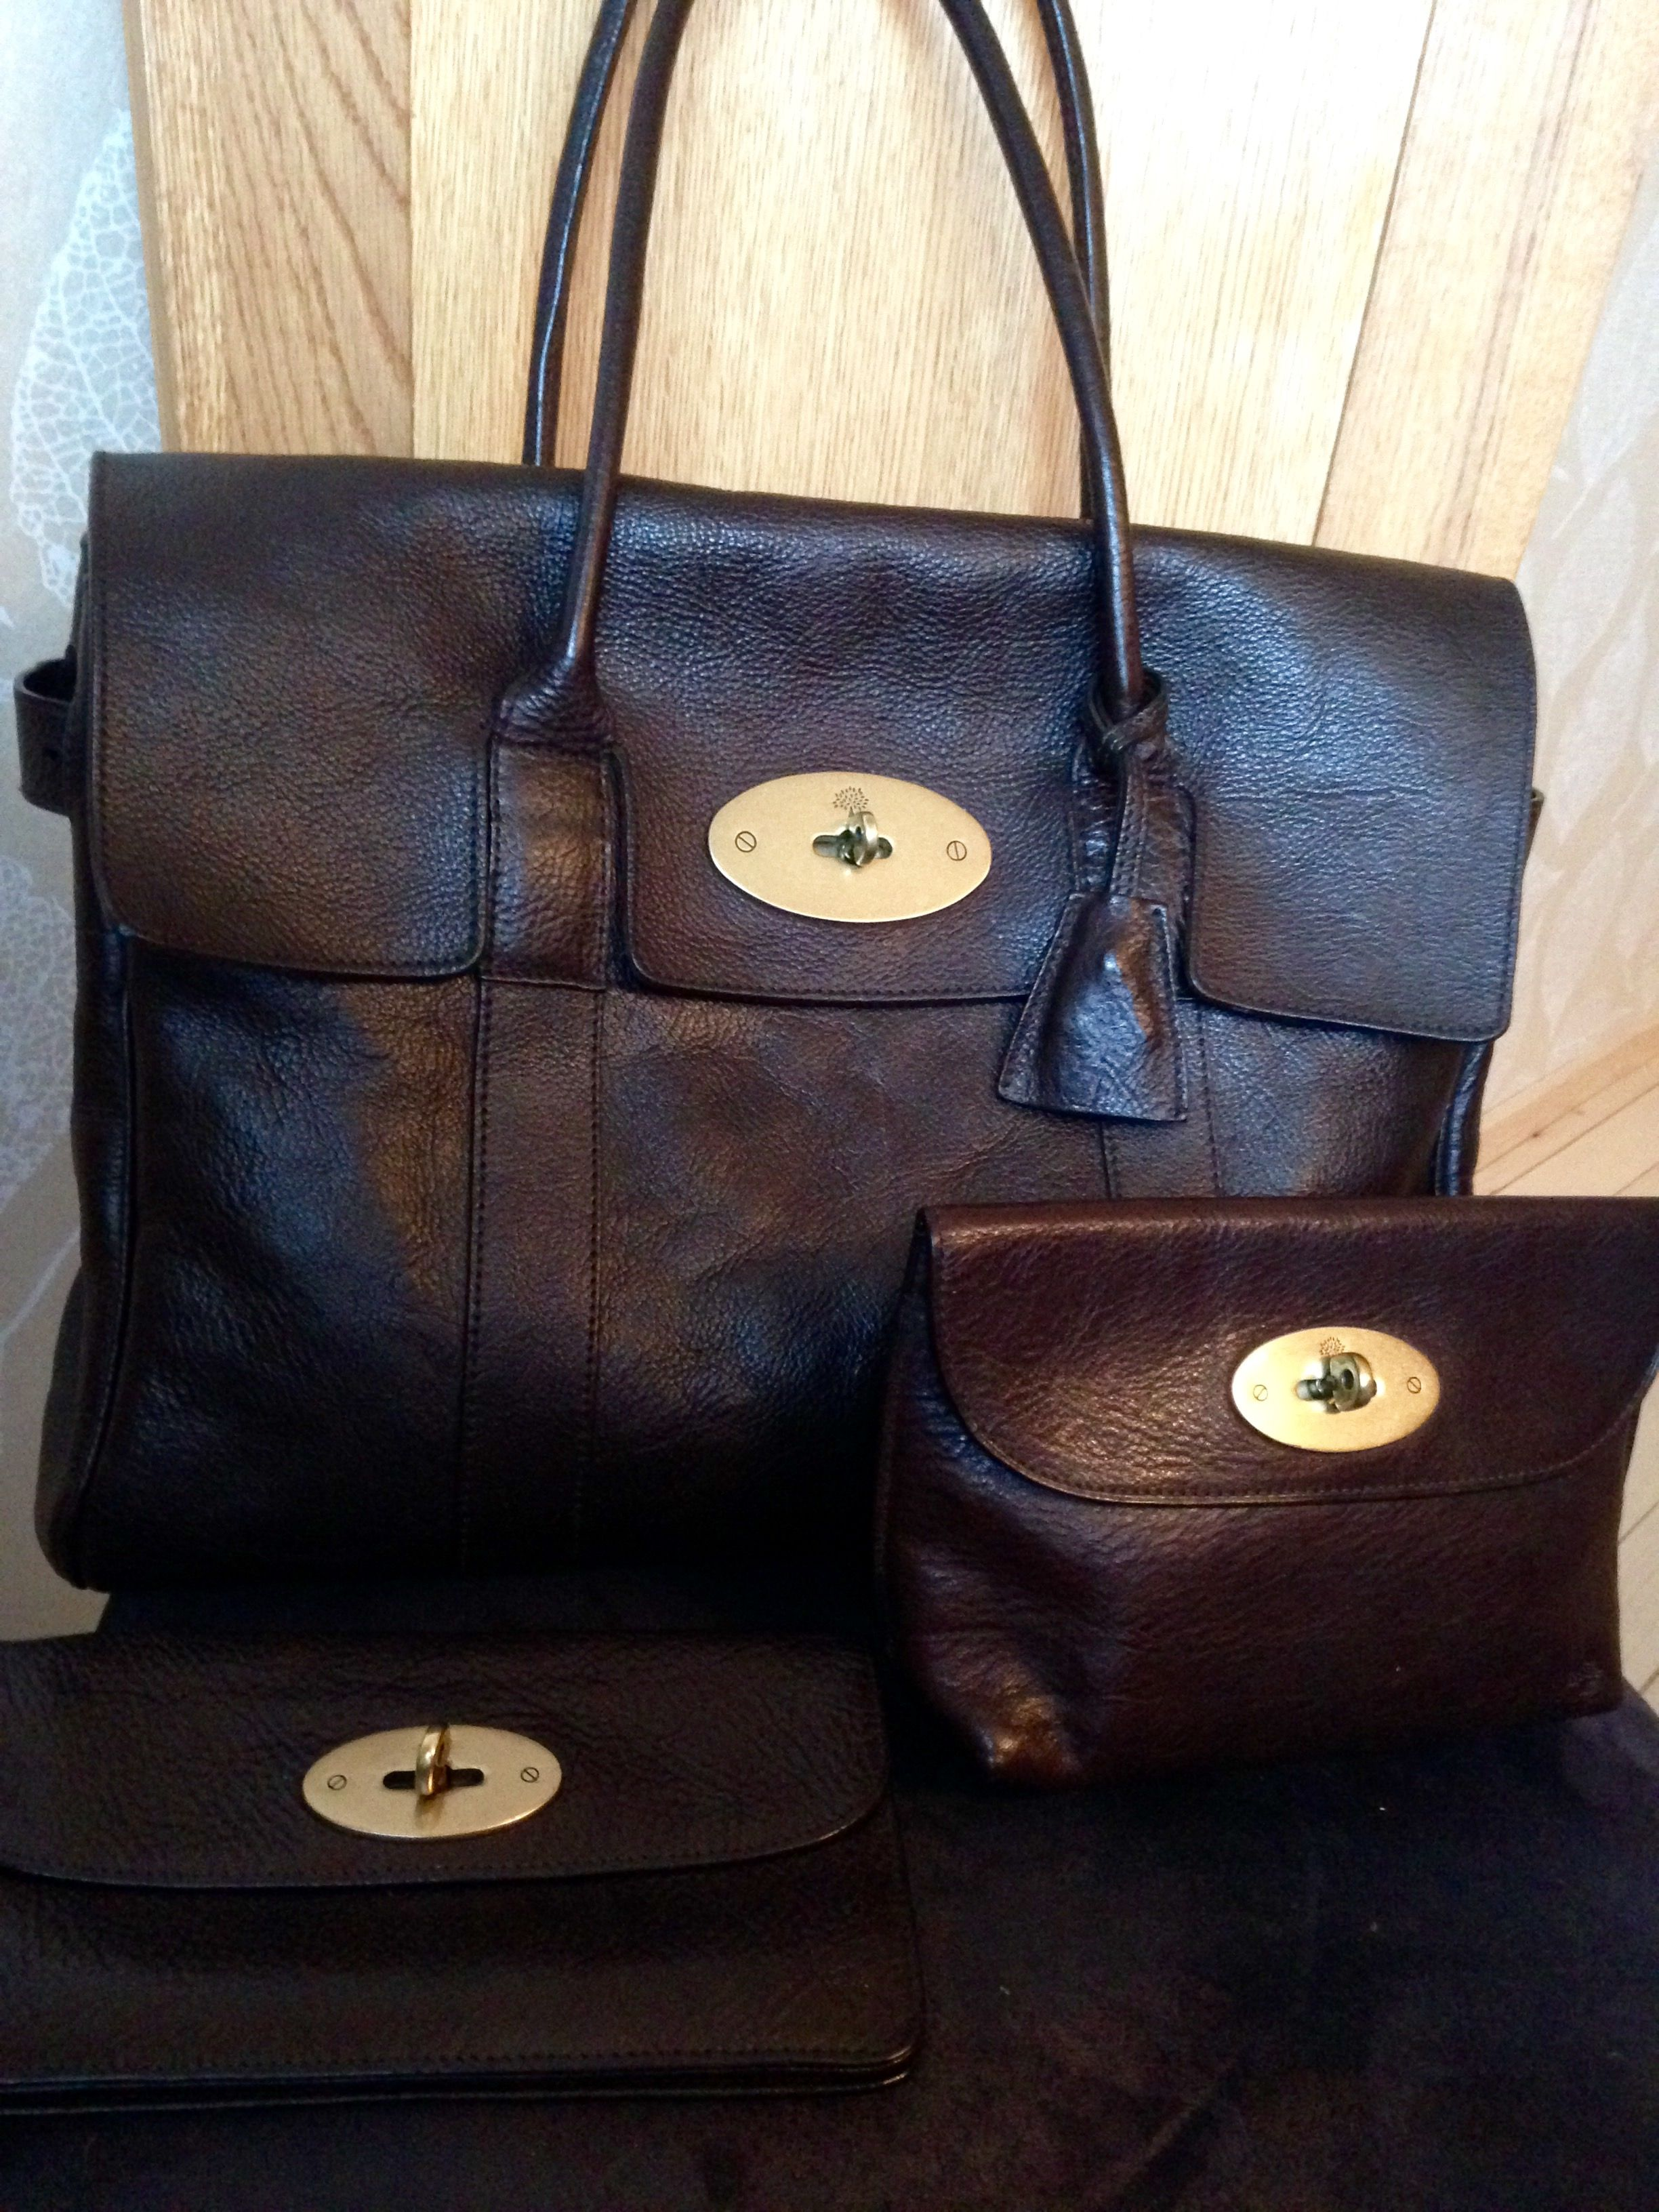 2b01e3c72373 Mulberry Bayswater in chocolate brown Darwin leather